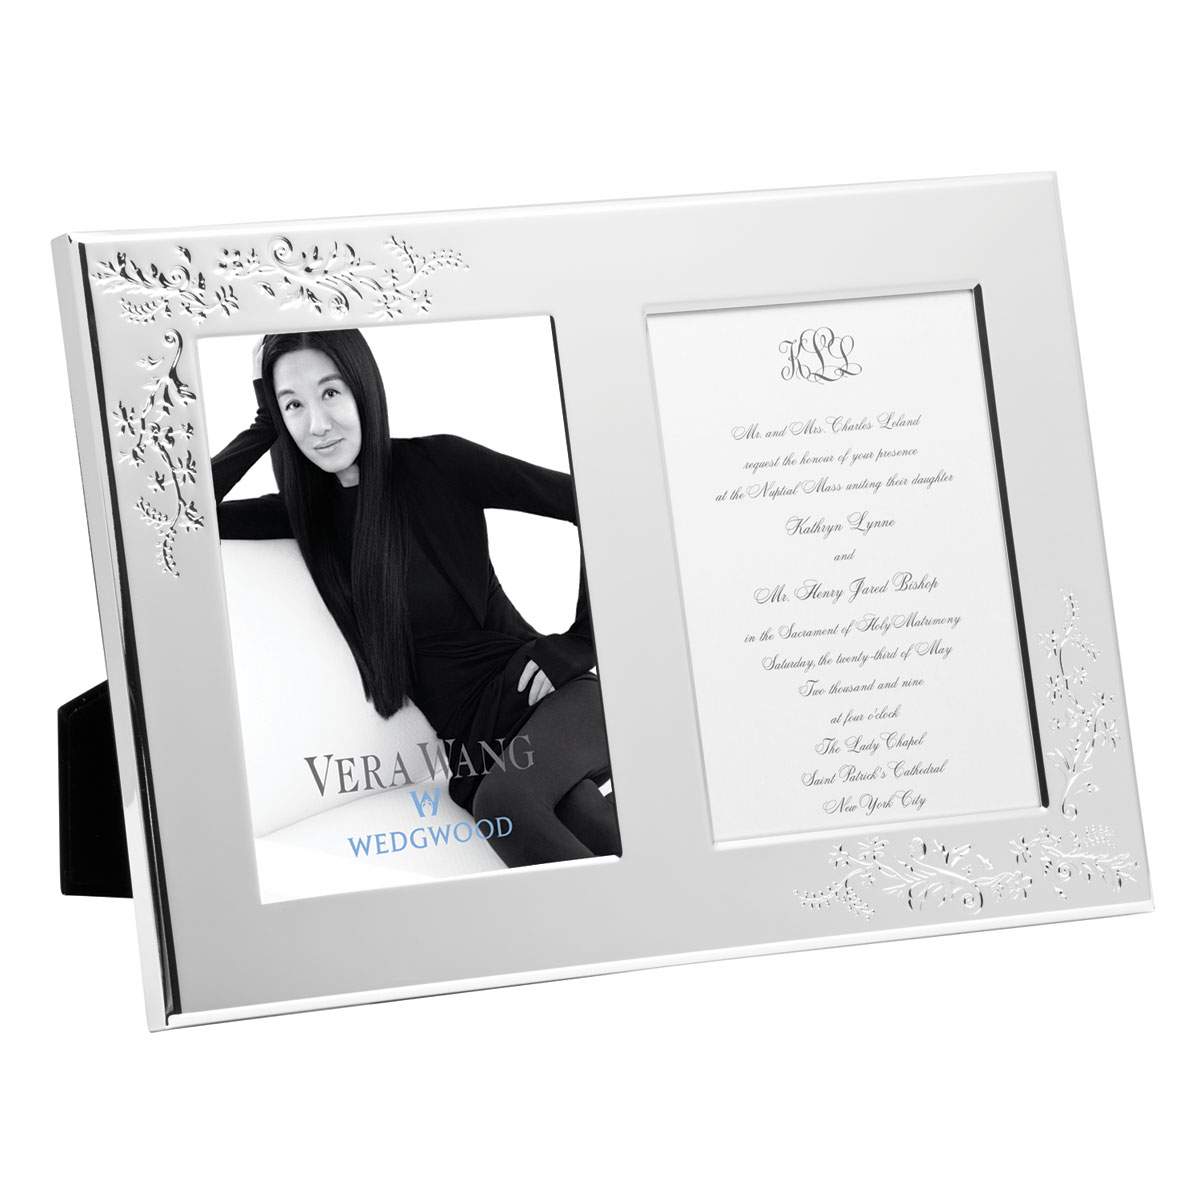 "Vera Wang Wedgwood Lace Bouquet Double Invitation 5x7"" Picture Frame"